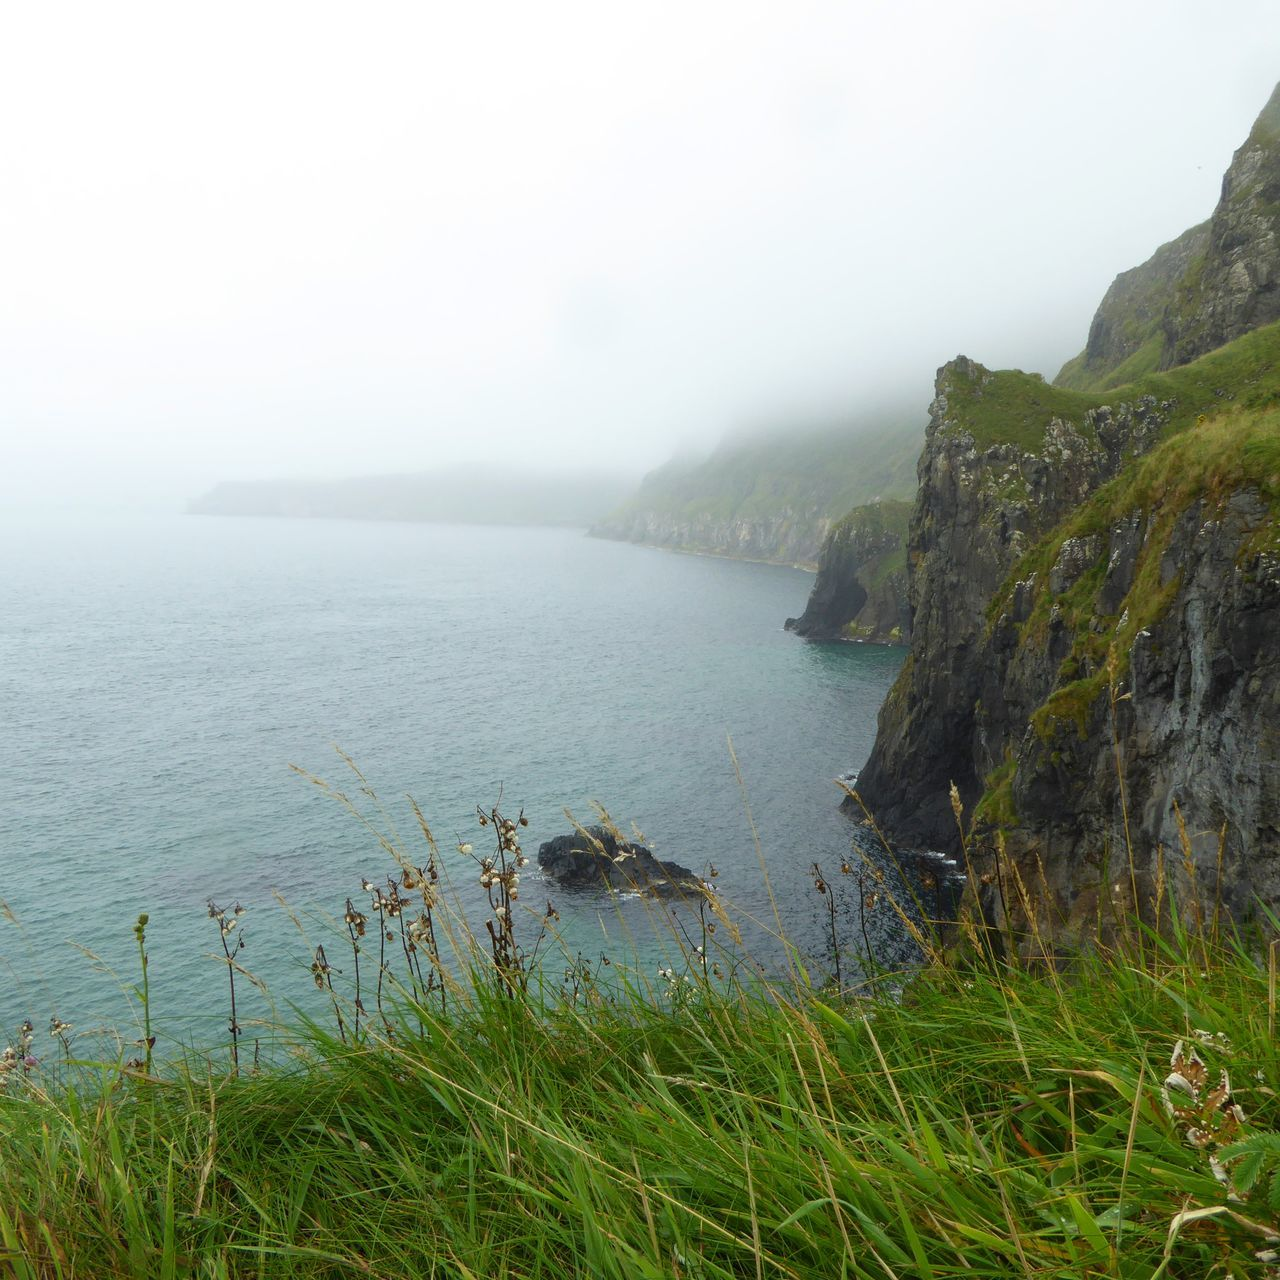 """The voice of the sea speaks to the soul."" Fog Nature Water Landscape Photographer Ireland Beauty Irish Landscape Cliffside Carrick-a-Rede Rope Bridge Northern Ireland Photography Photooftheday Sony A6000 Stunning View Capture Traveling Beauty In Nature Outdoors Wanderlust Sea Blue EyeEmNewHere"